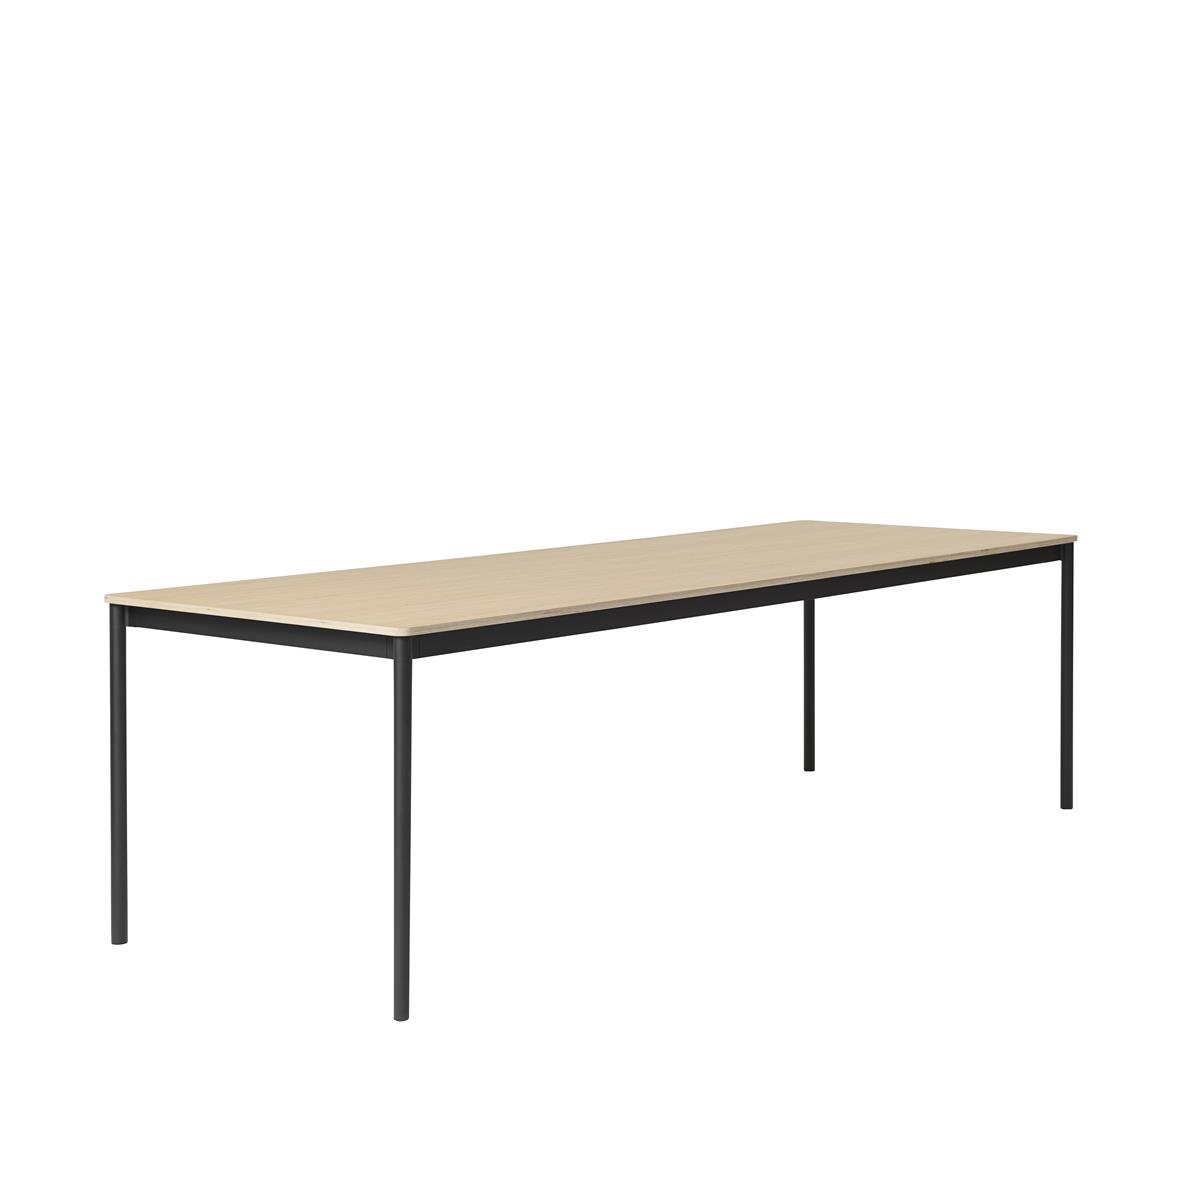 Base Table / 250 X 110 Oak Veneer - Plywood edges